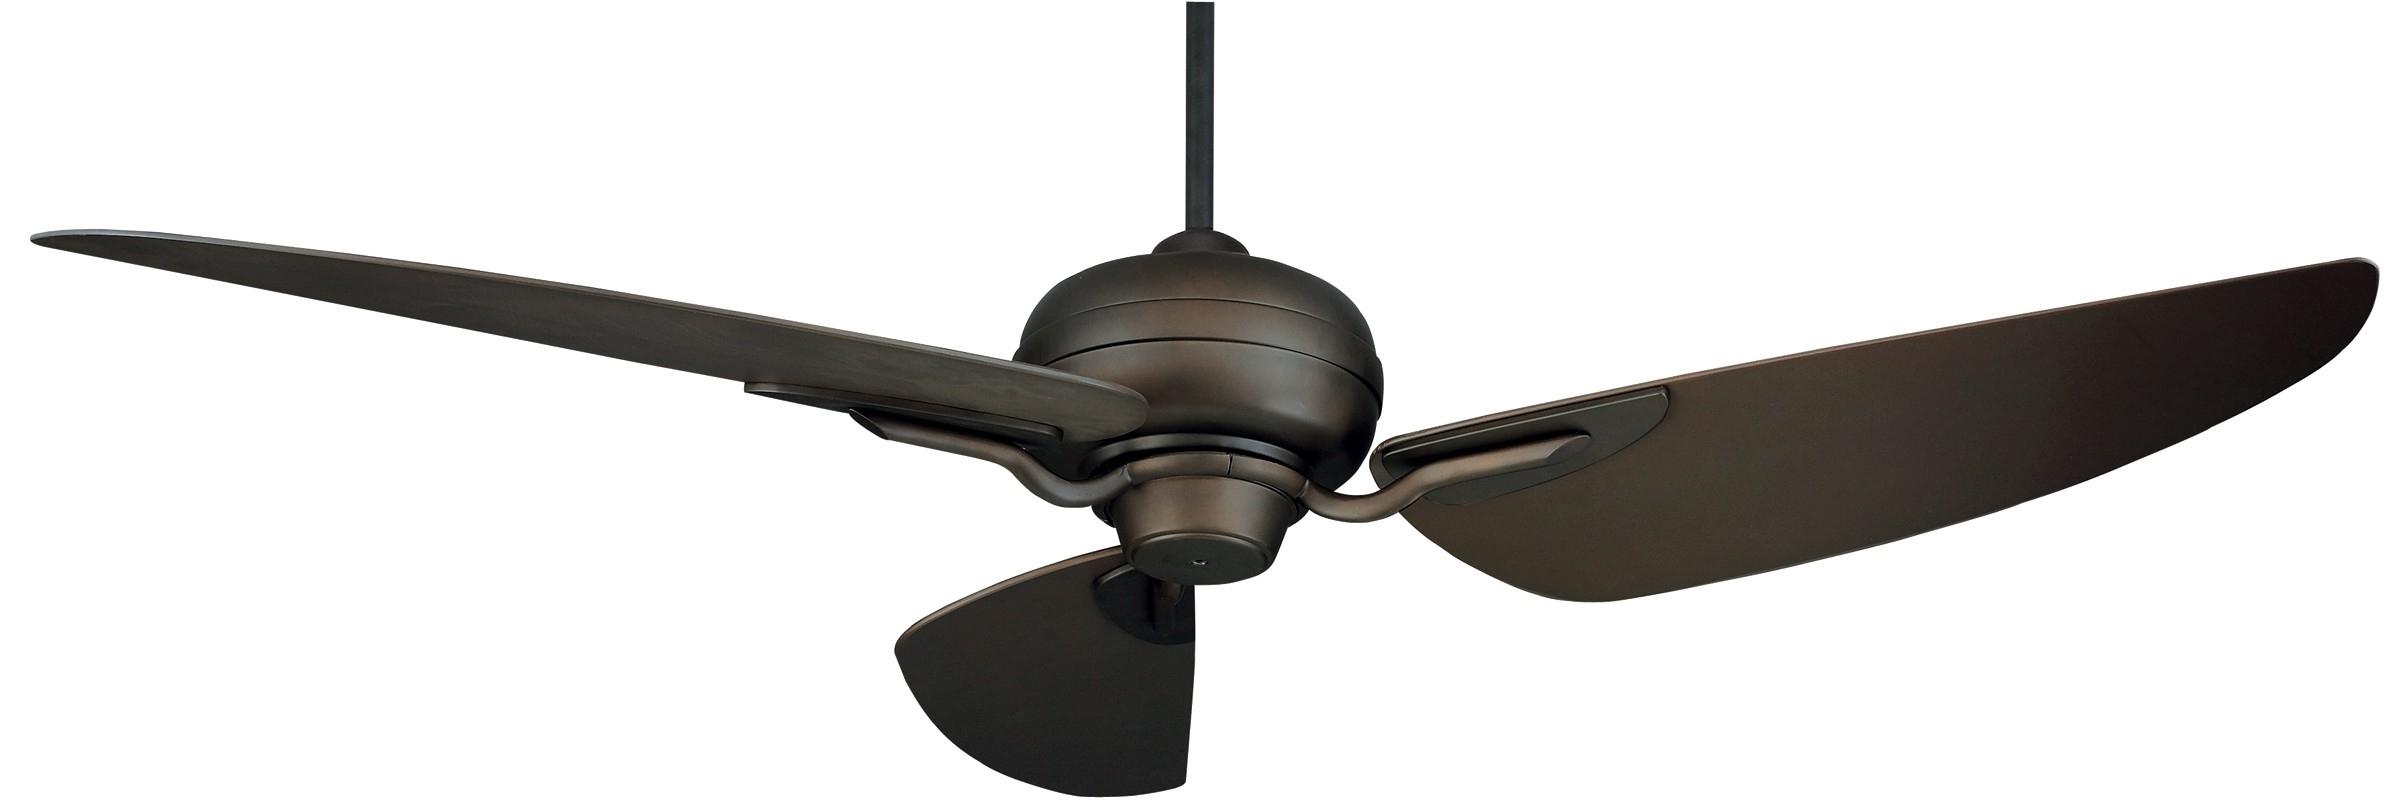 Ceiling Fans : Awesome Wet Rated Outdoor Ceiling Fans Waterproof Intended For Wet Rated Outdoor Ceiling Lights (View 8 of 15)